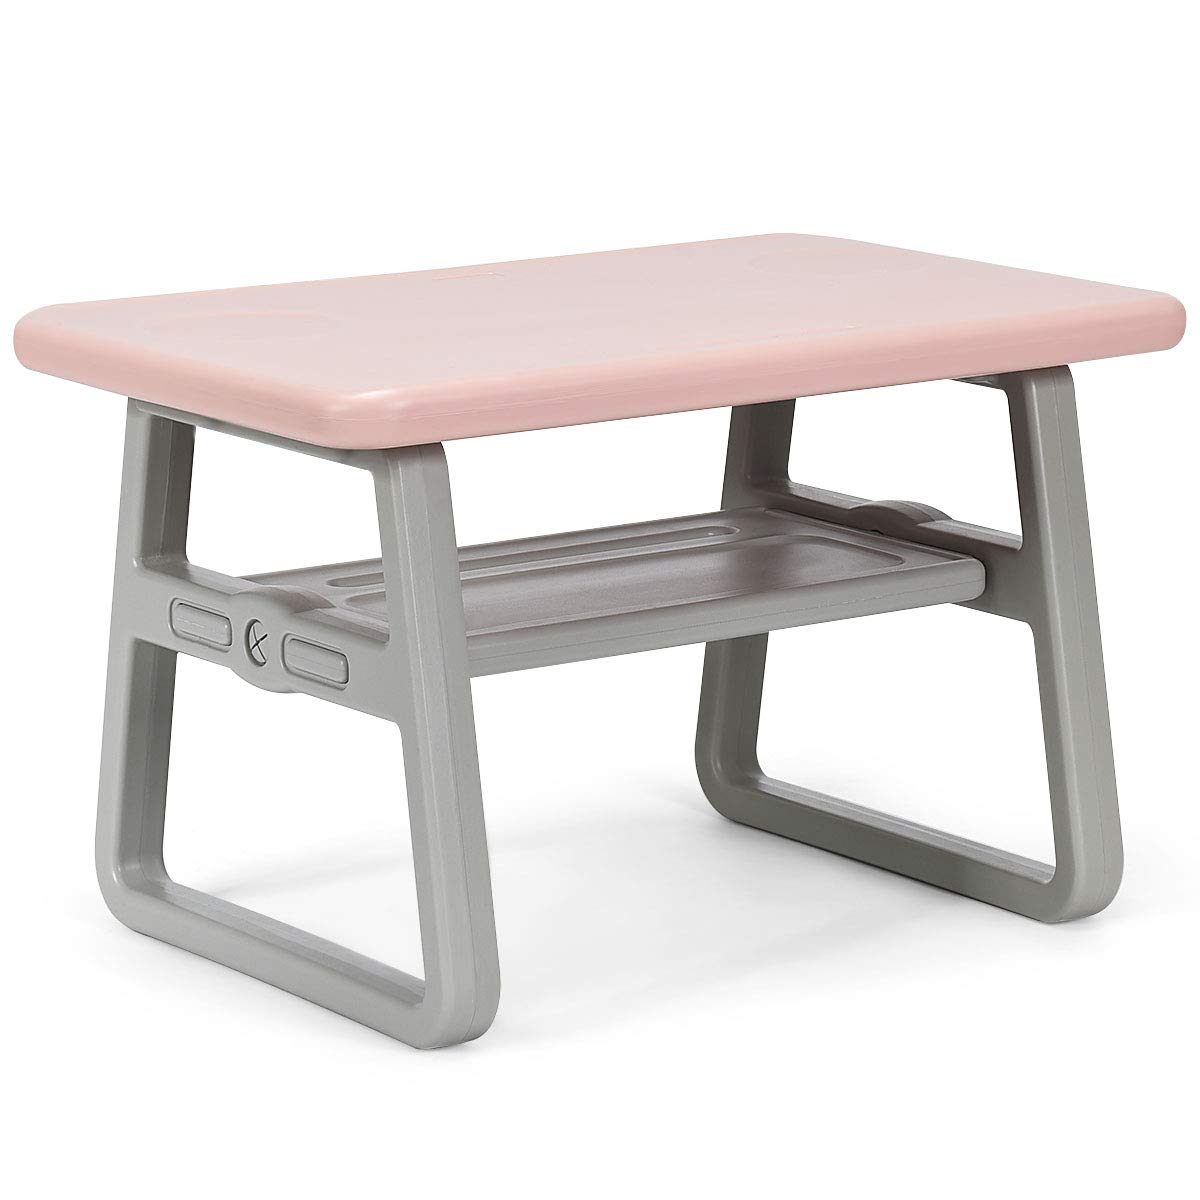 Costzon 3 Piece Kids Table and 2 Chairs Set, Learning Activity Play Table, Baby Dining Table, Children Desk Chair for 1-3 Years, Kids Furniture Set (Pink) by Costzon (Image #5)